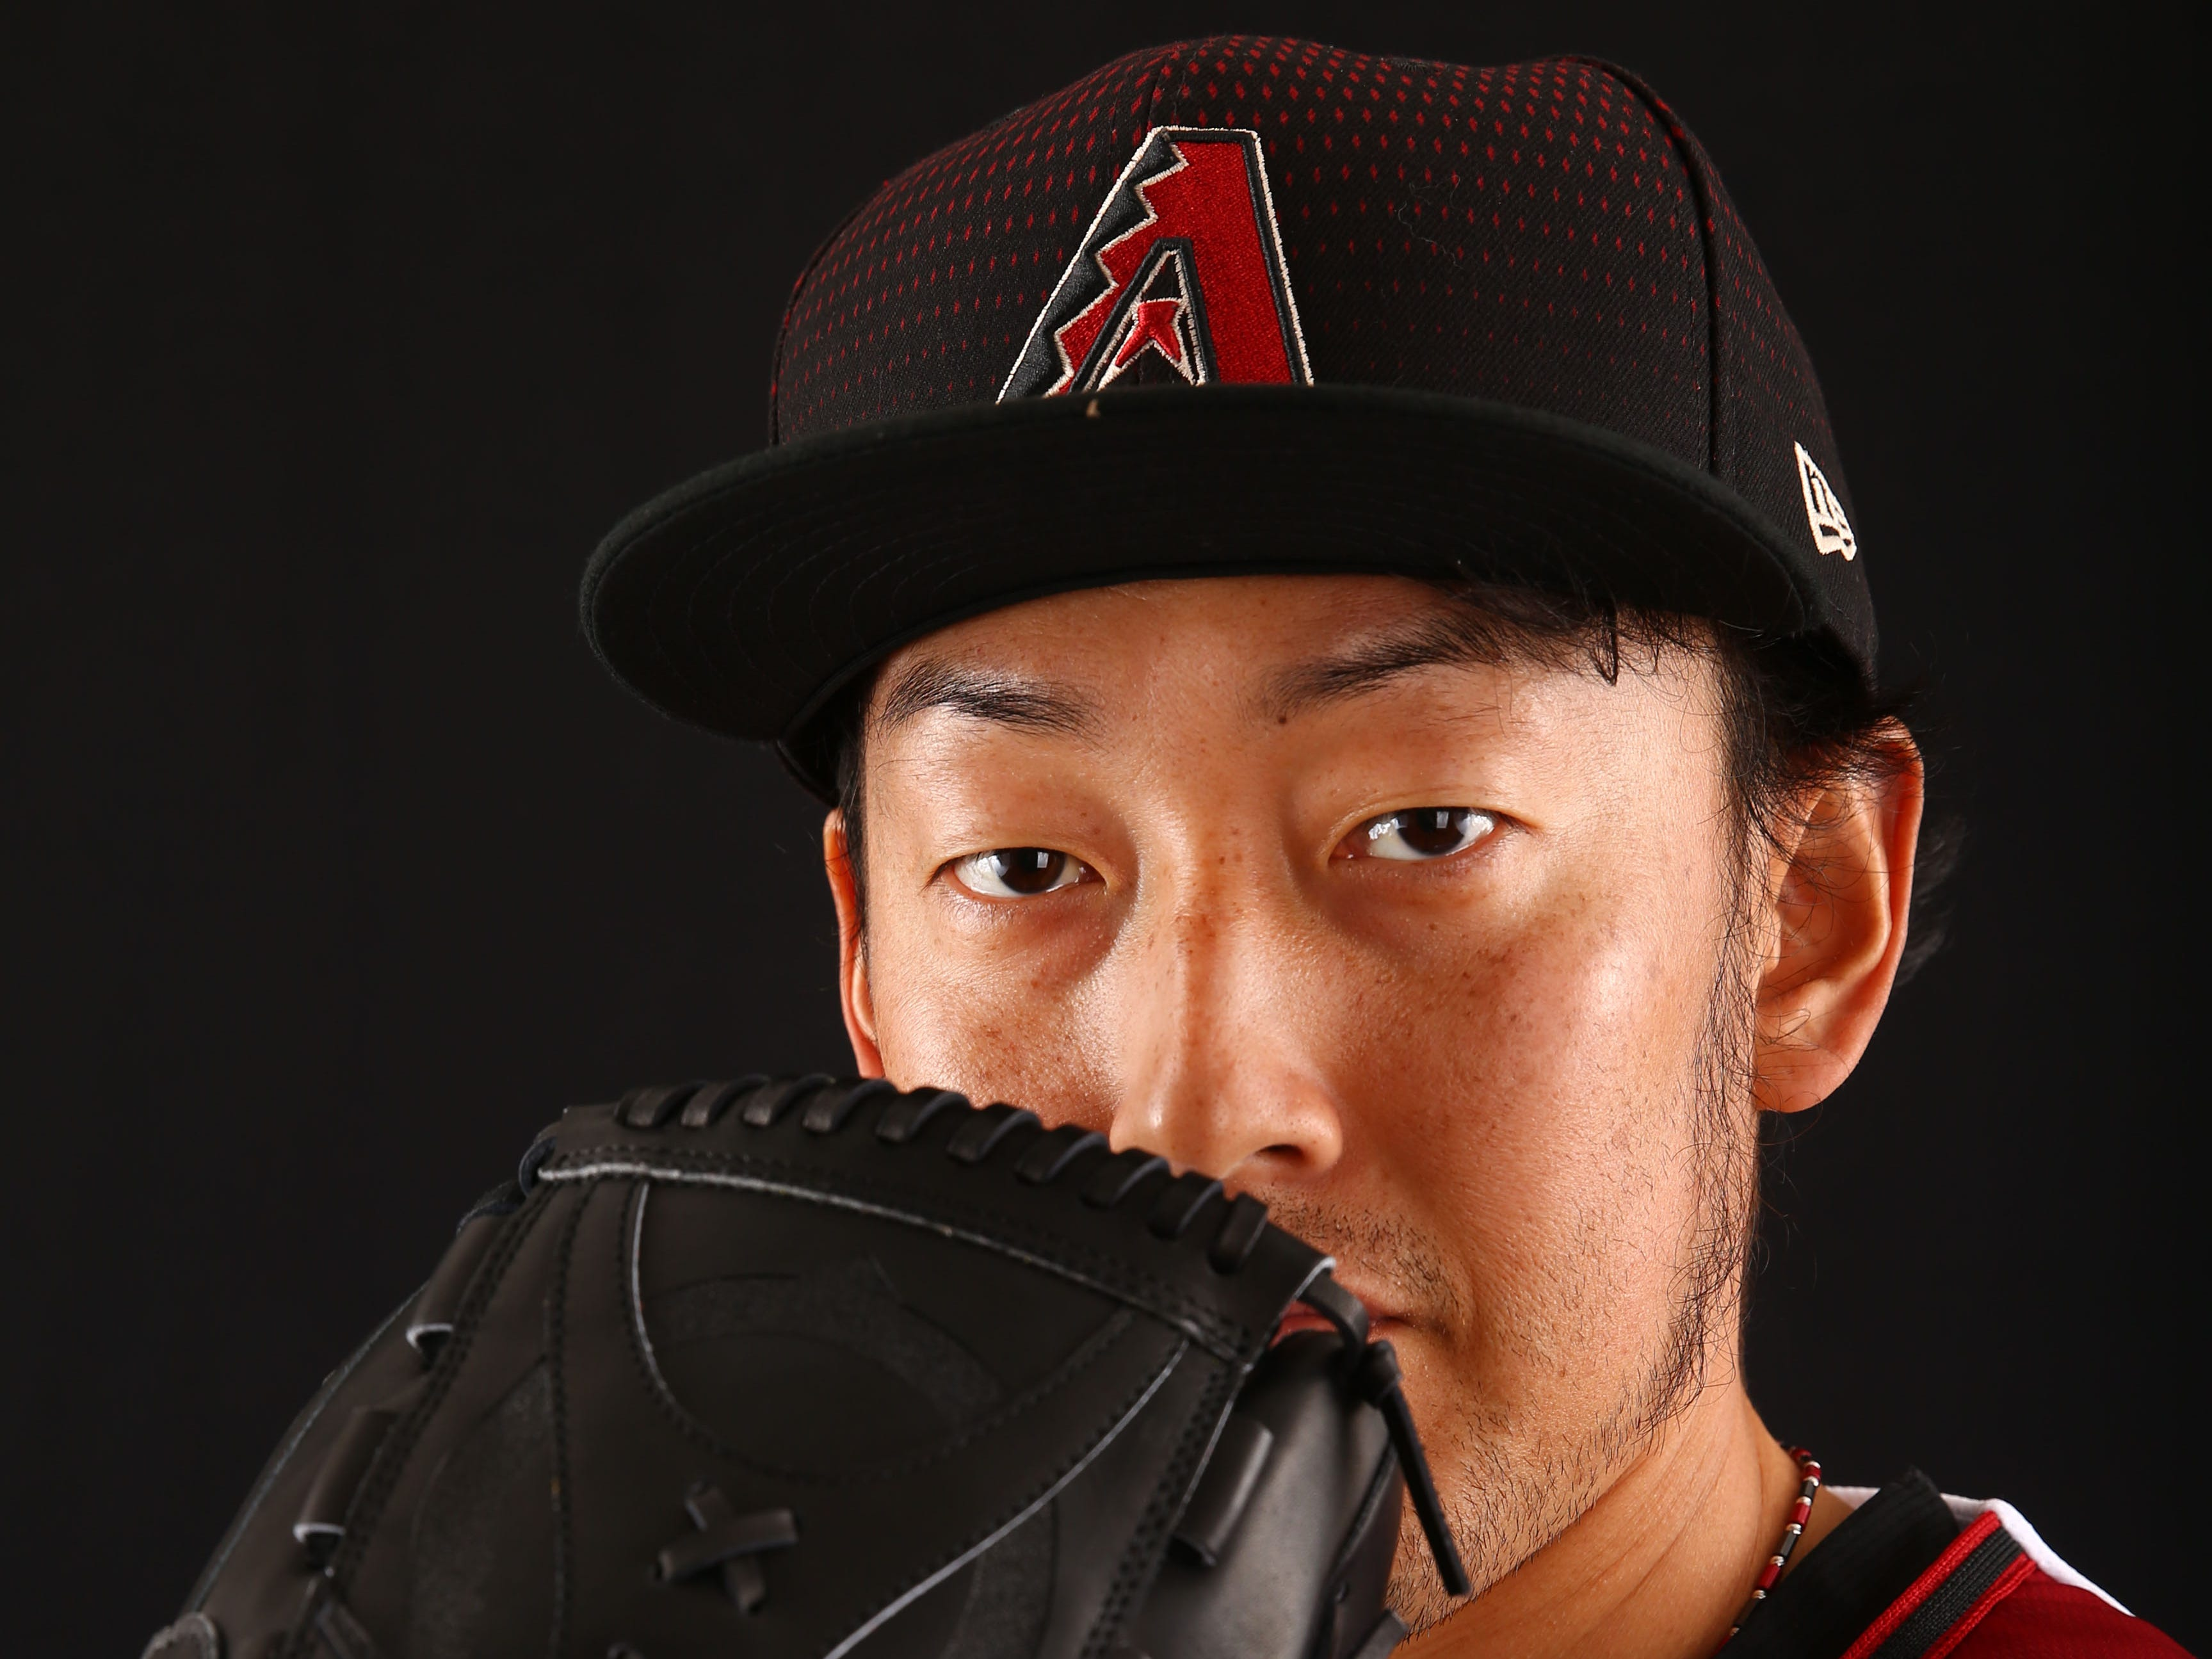 Yoshihisa Hirano of the Arizona Diamondbacks poses for a photo during the annual Spring Training Photo Day on Feb. 20 at Salt River Fields in Scottsdale, Ariz.